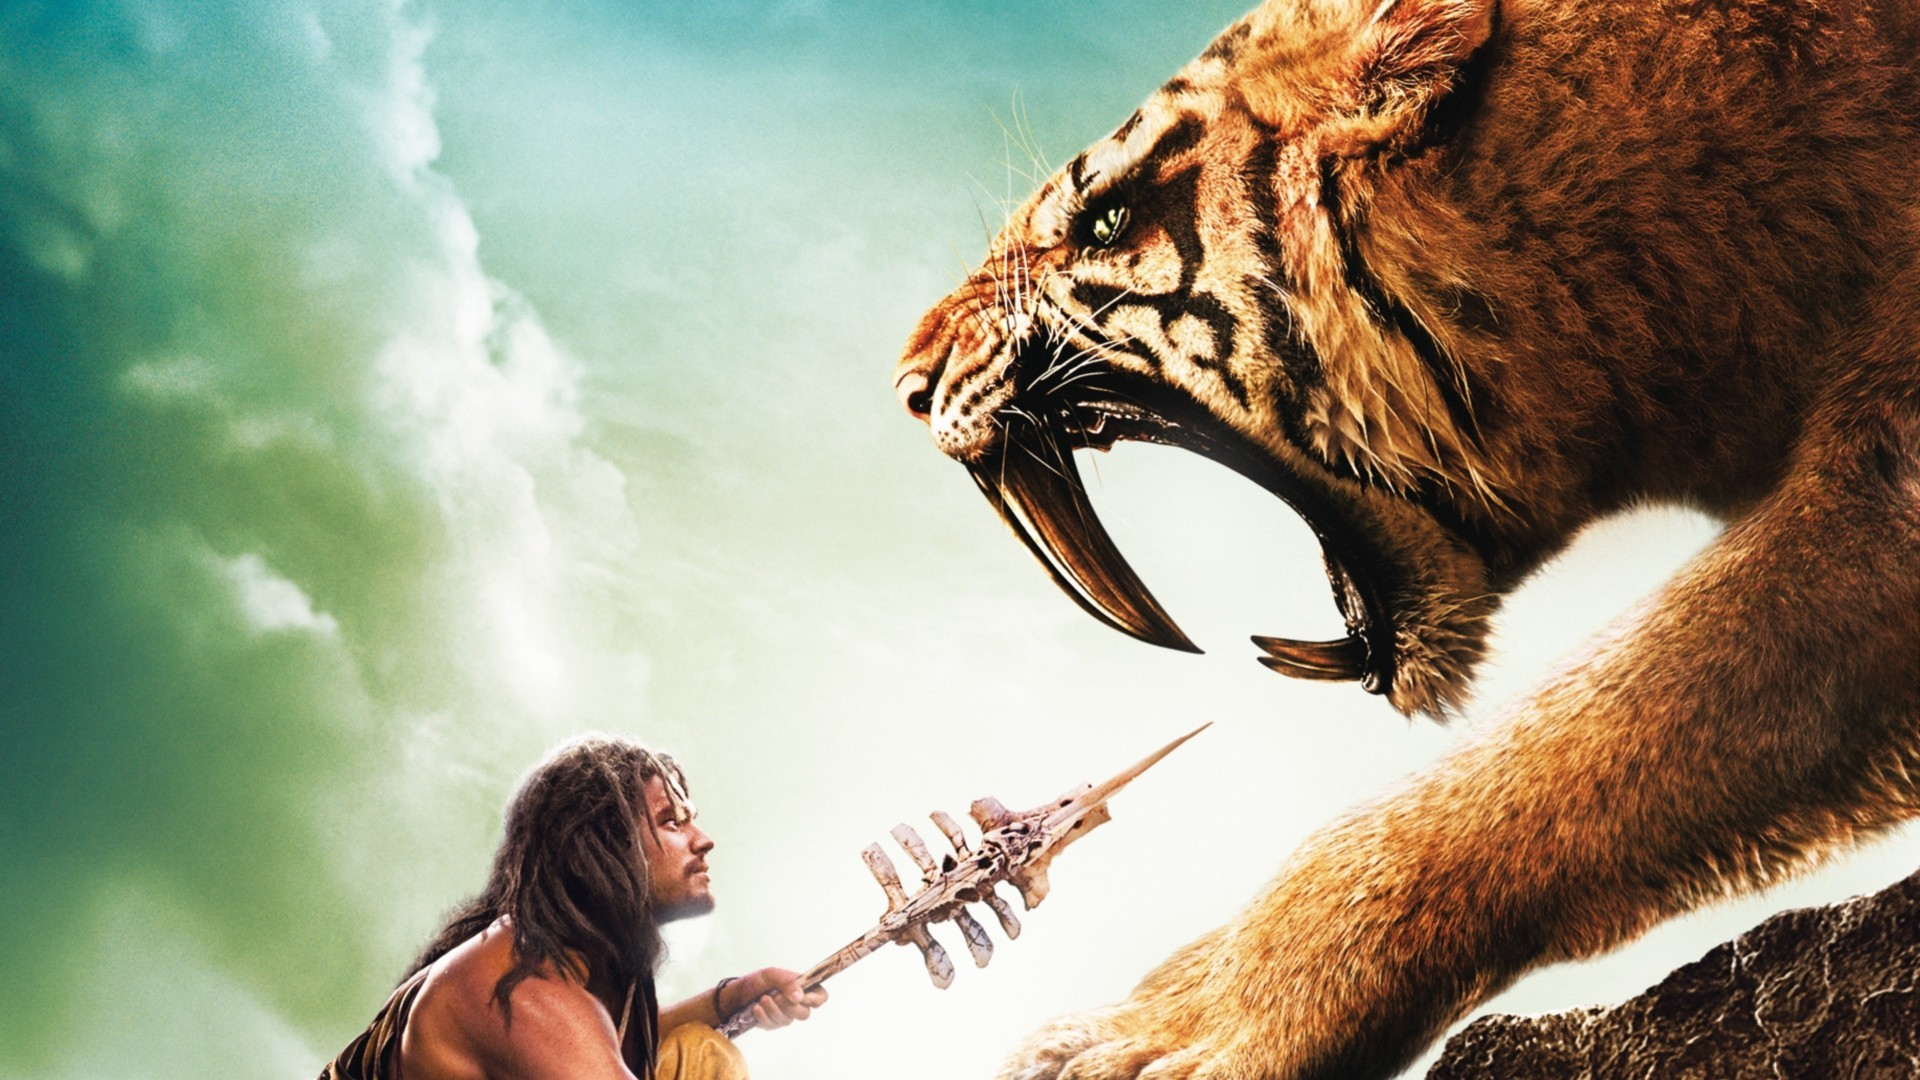 10 000 bc hd wallpaper background image 1920x1080 id 804396 wallpaper abyss - Hd wallpapers 10000x10000 ...